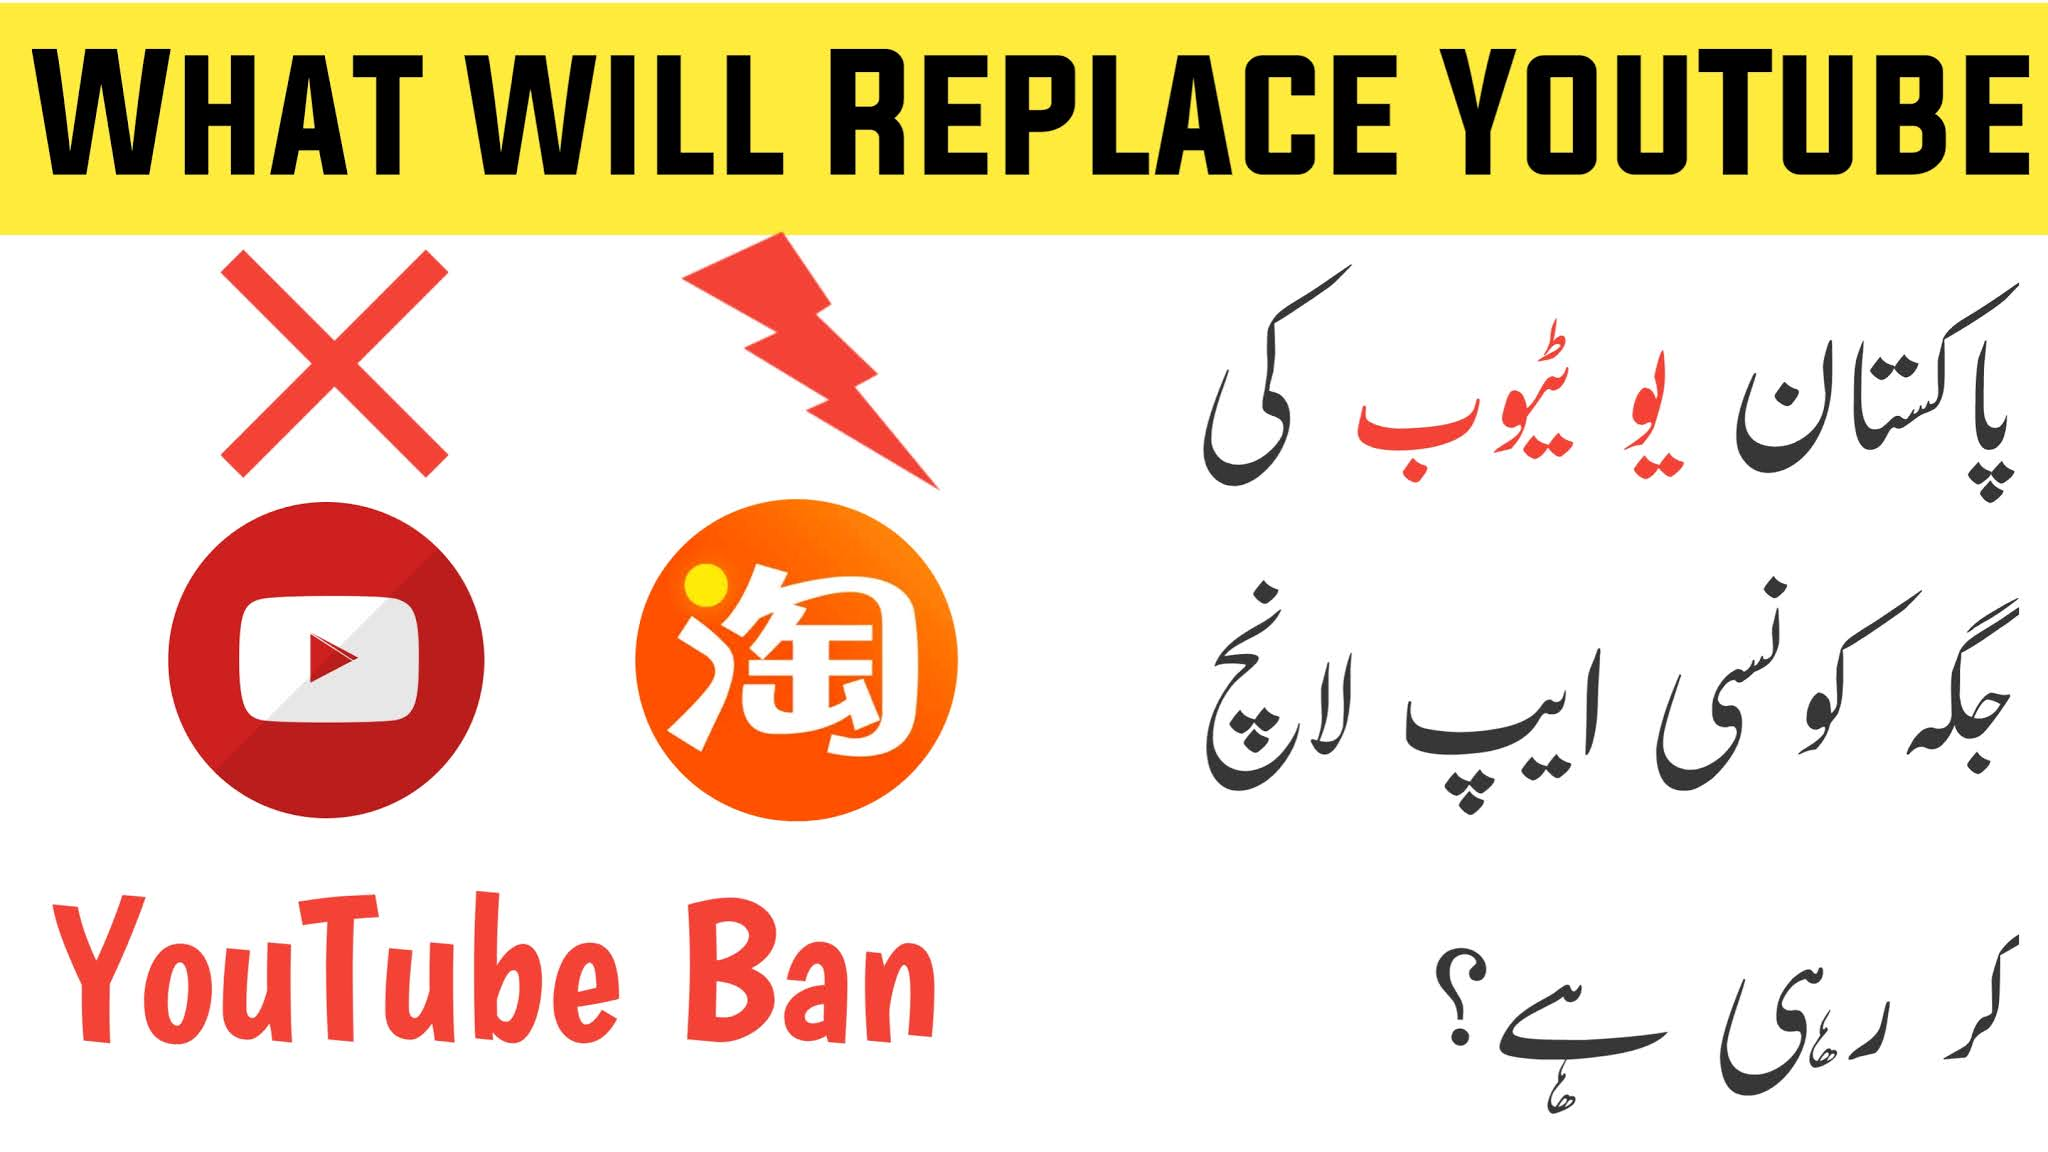 What will be instead of YouTube - Pakistan Banning The YouTube